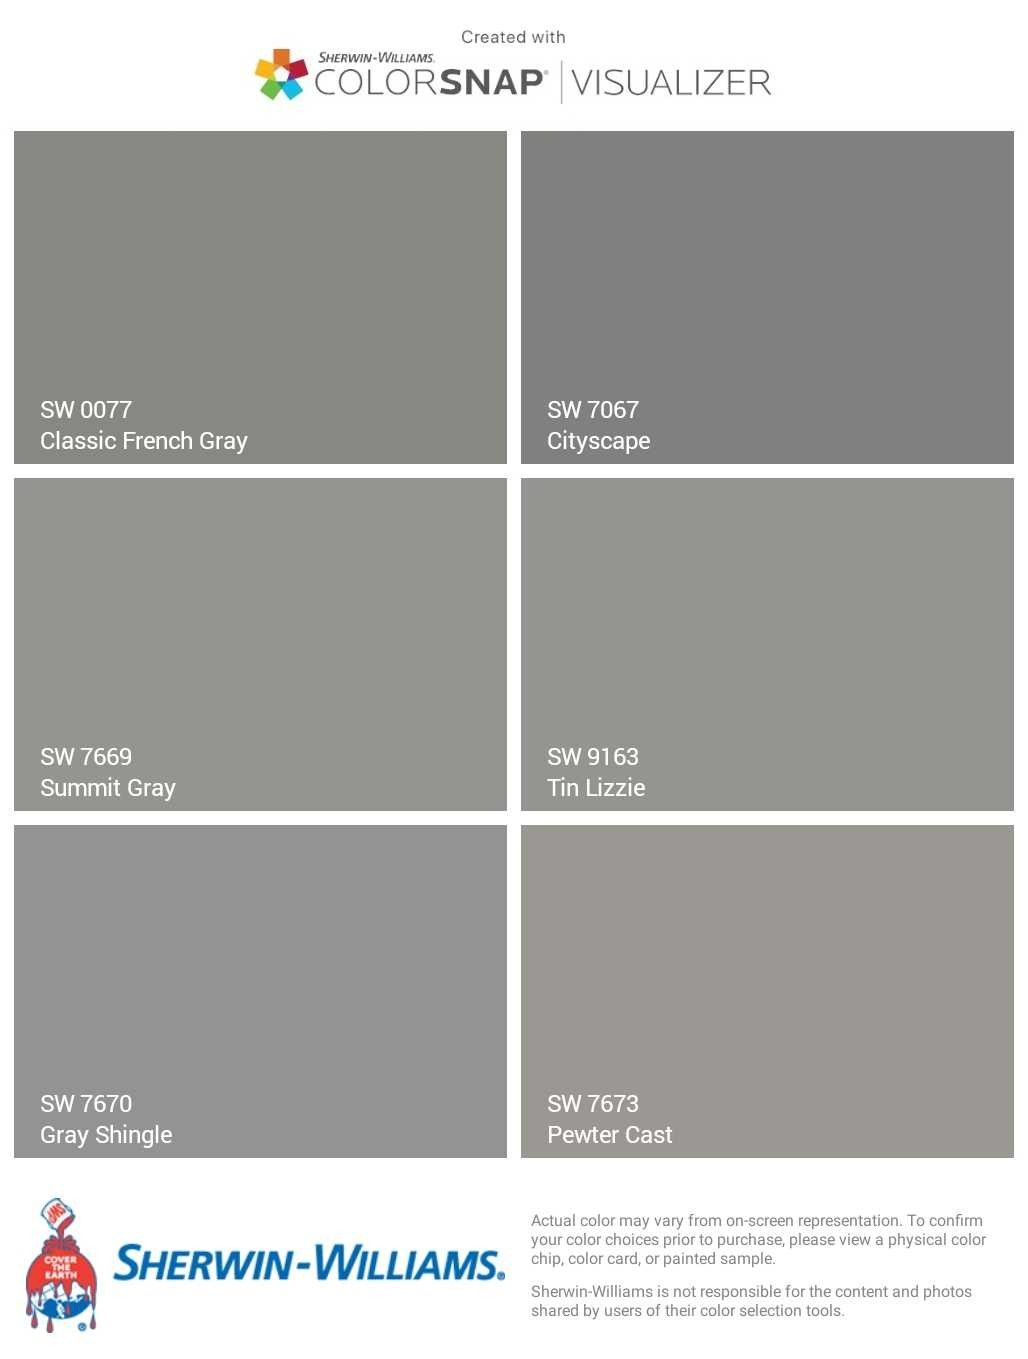 Medium To Dark Gray Paint Colors Bathroom Vanity Gray Paint Color Options Tin Lizzie And Su Dark Gray Paint Colors Exterior Paint Colors For House Grey Paint